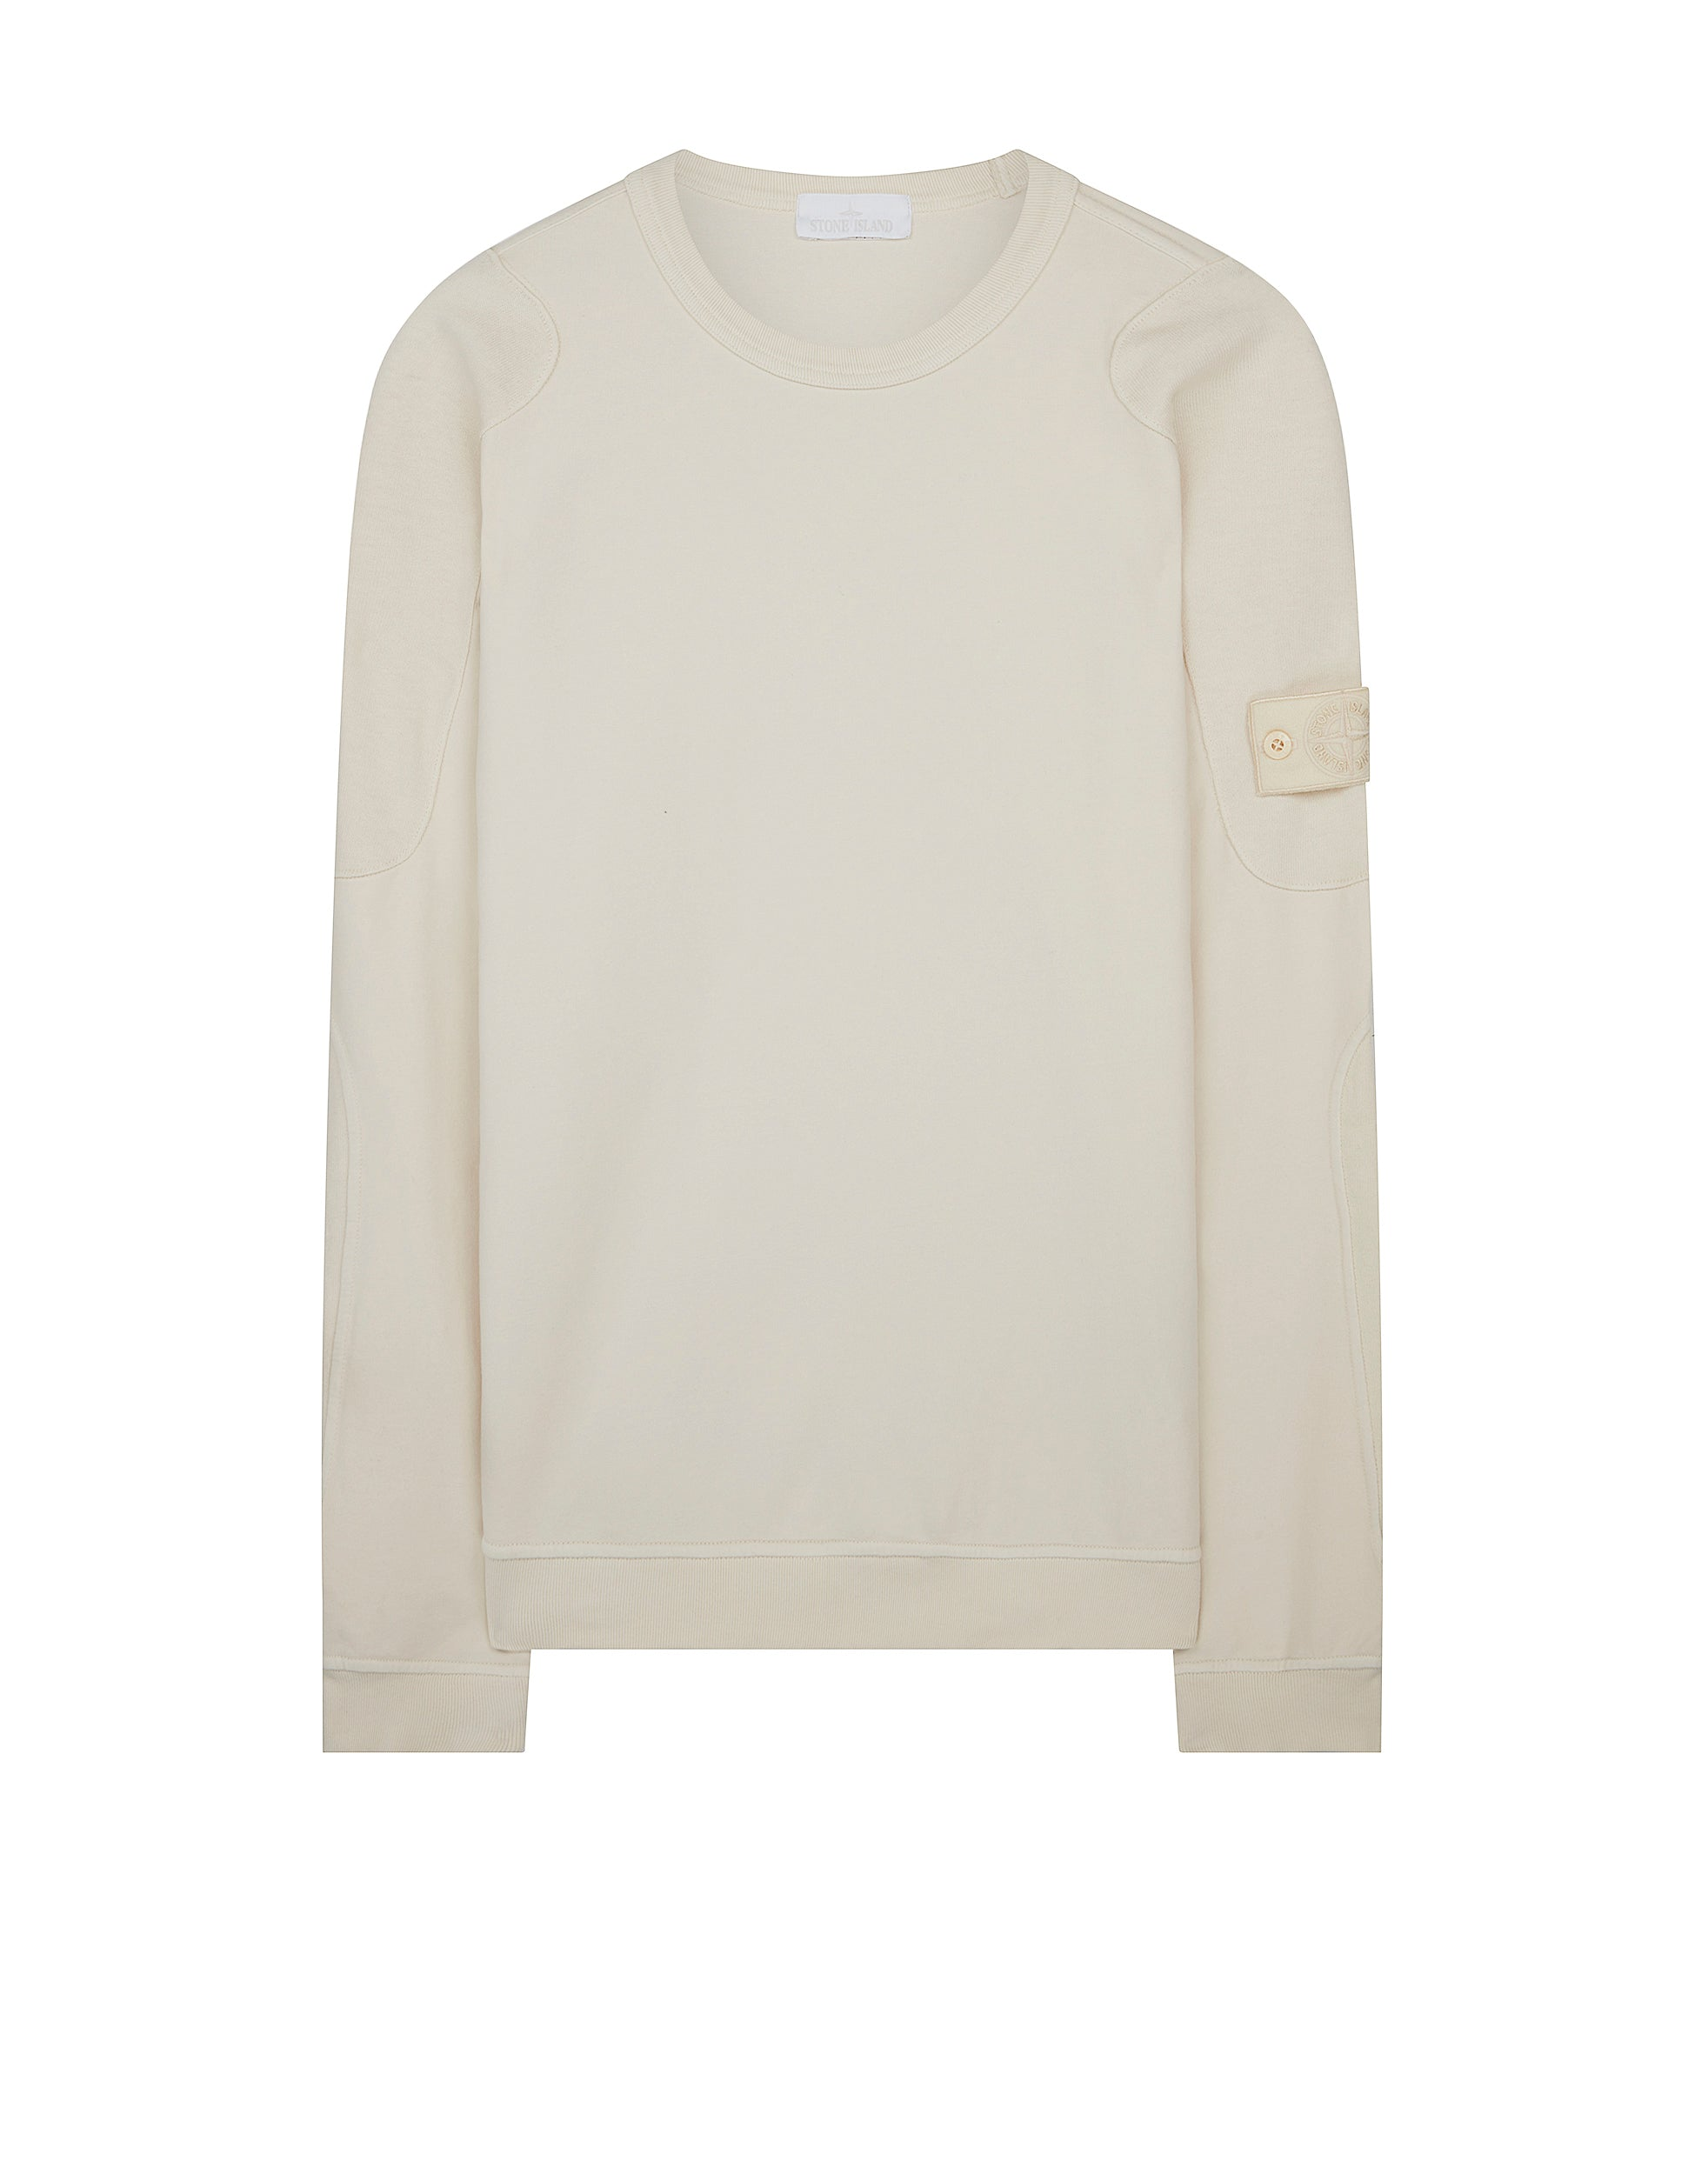 620F6 GHOST PIECE Sweatshirt in Natural